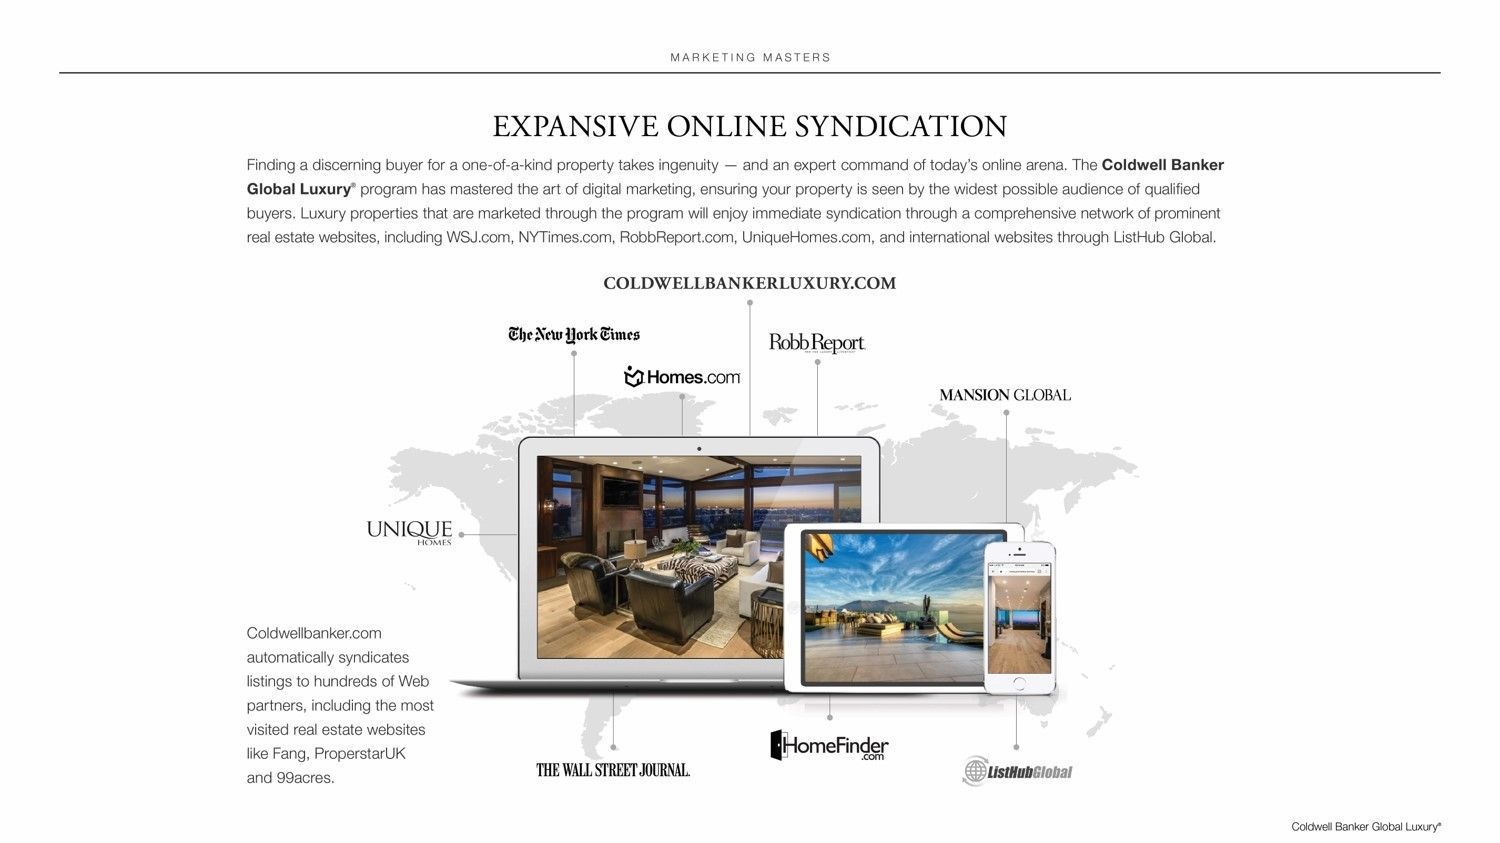 coldwell-banker-global-luxury-expansive-online-syndication